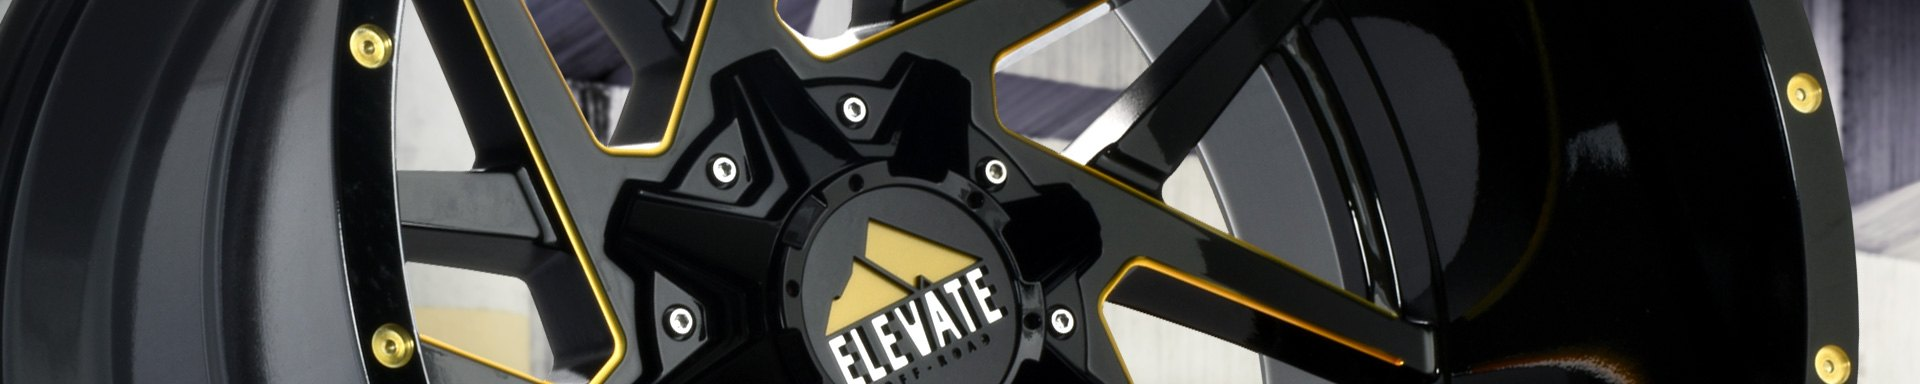 Elevate Custom Wheels